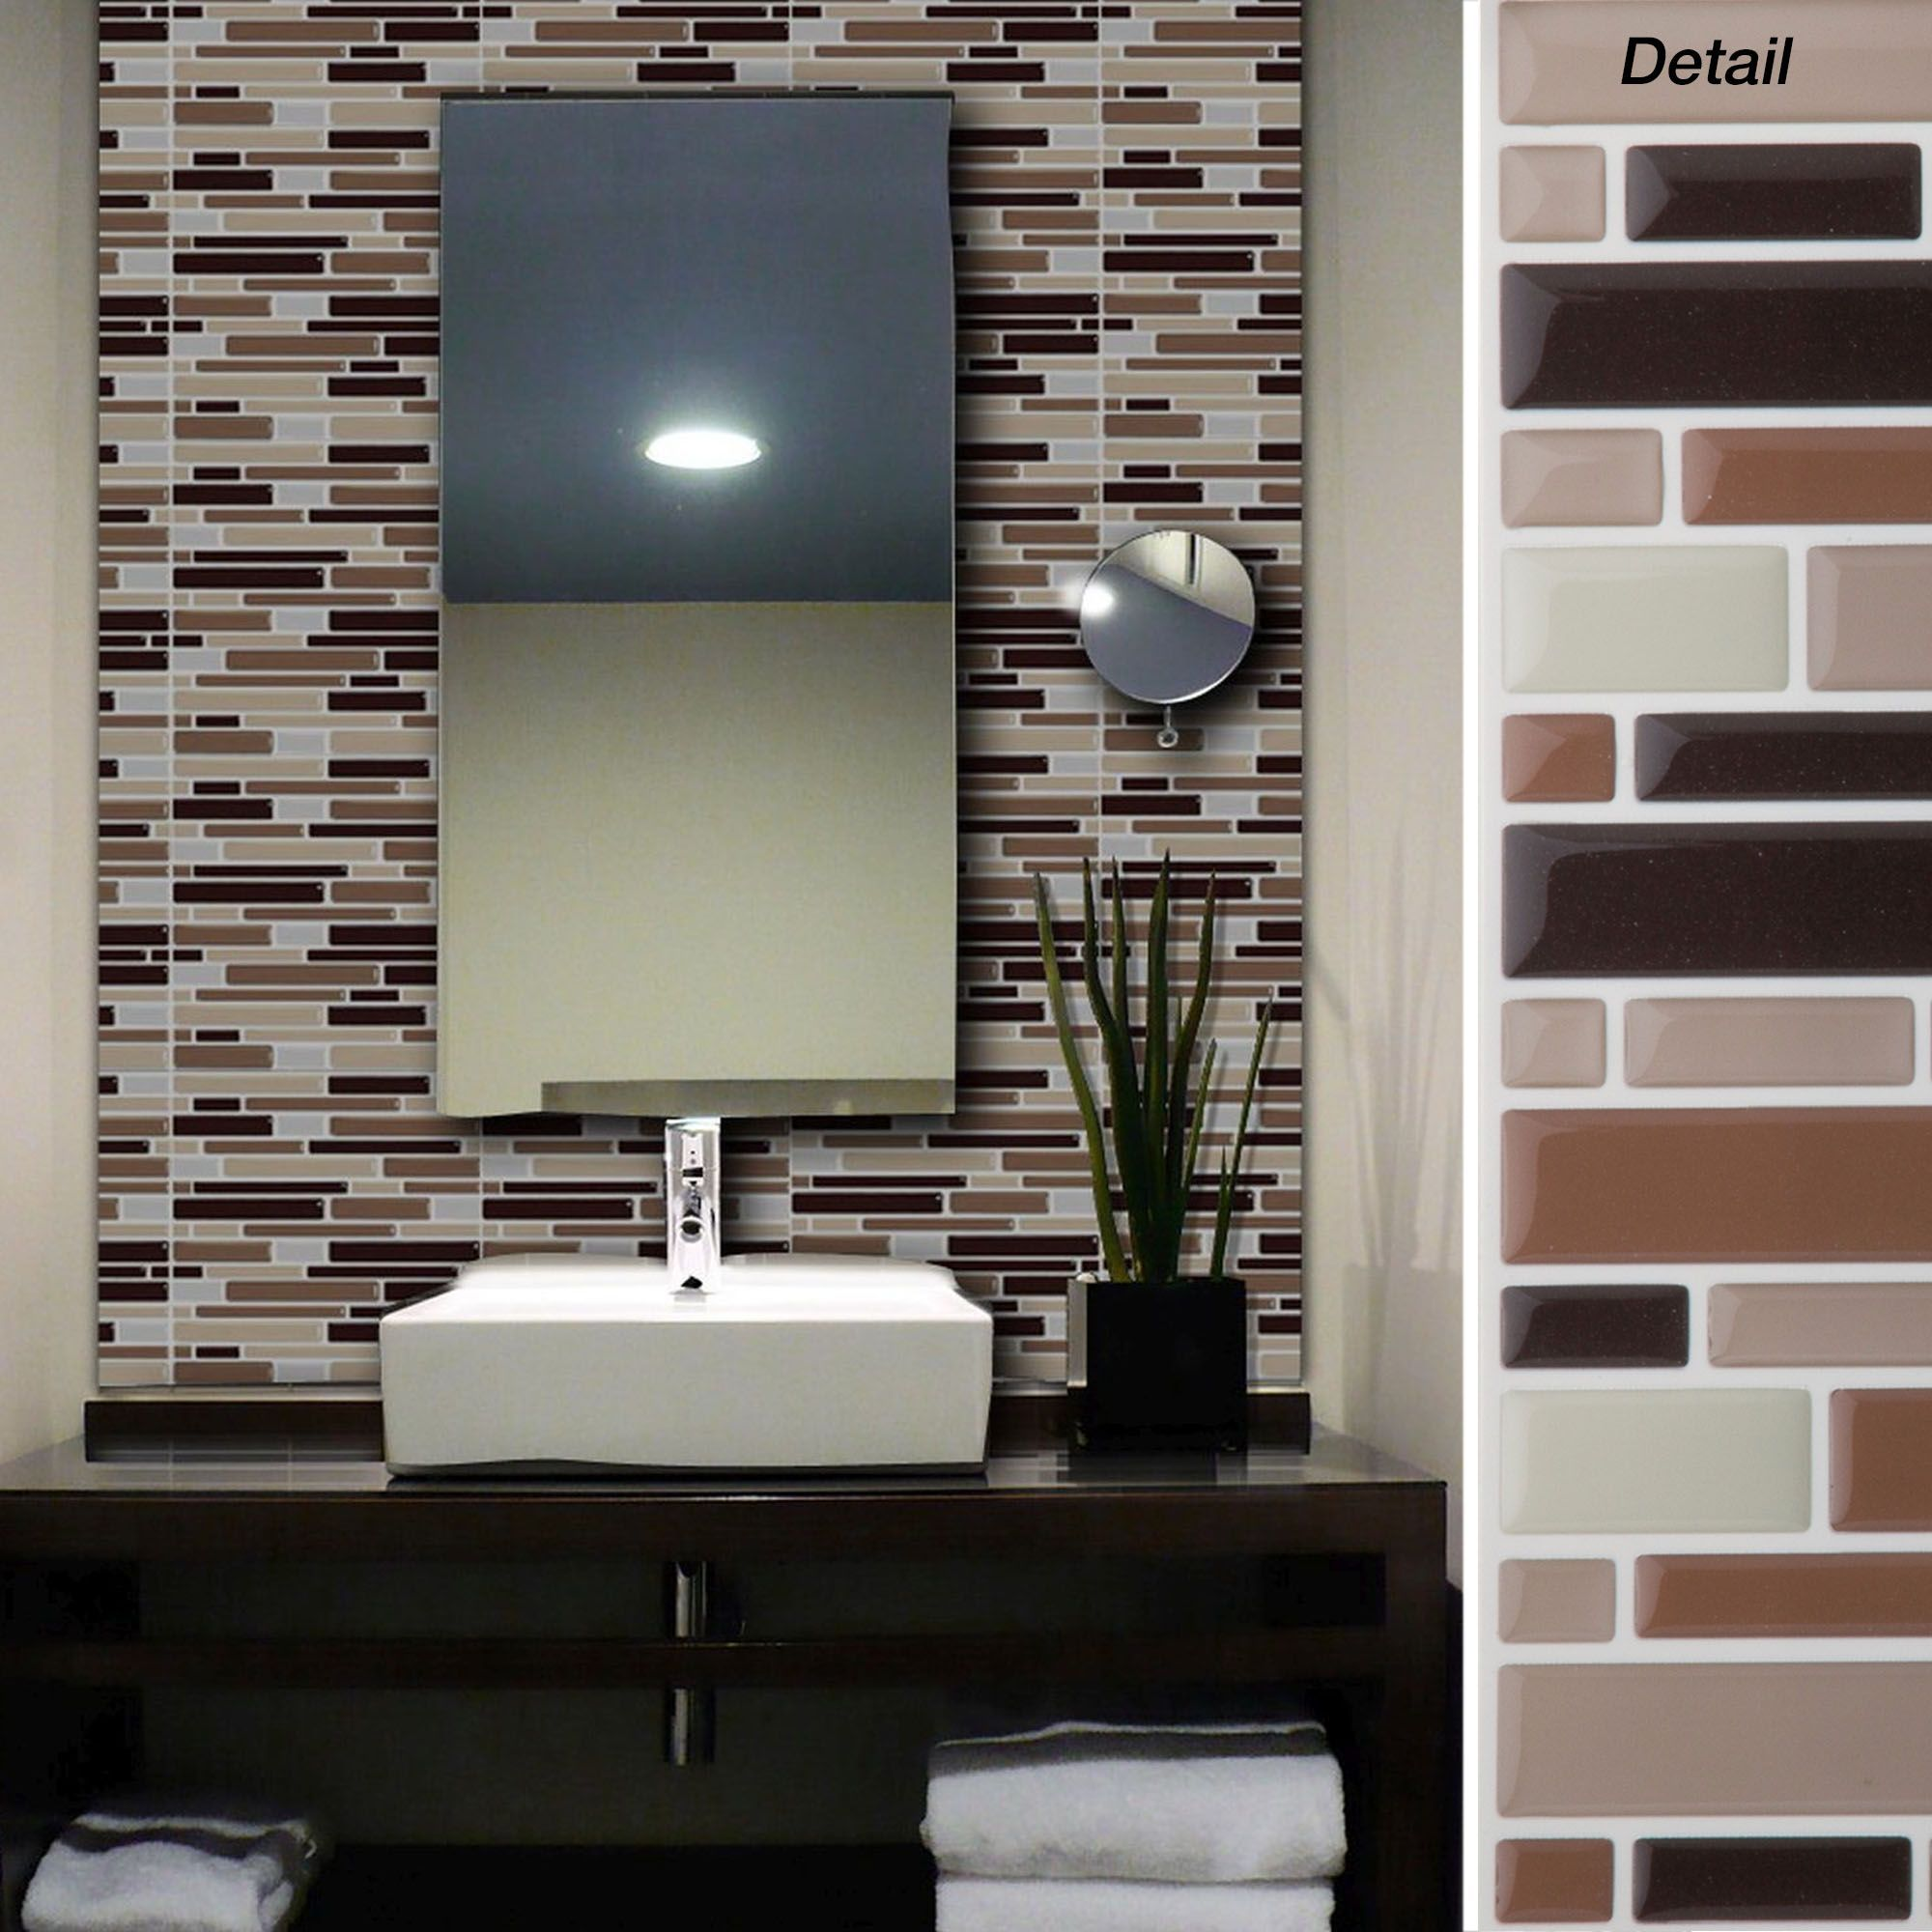 Adhesive Mirror Tiles Bathroom Toilet Are The Most Detailed Aspect Of Your Design In Many Cas